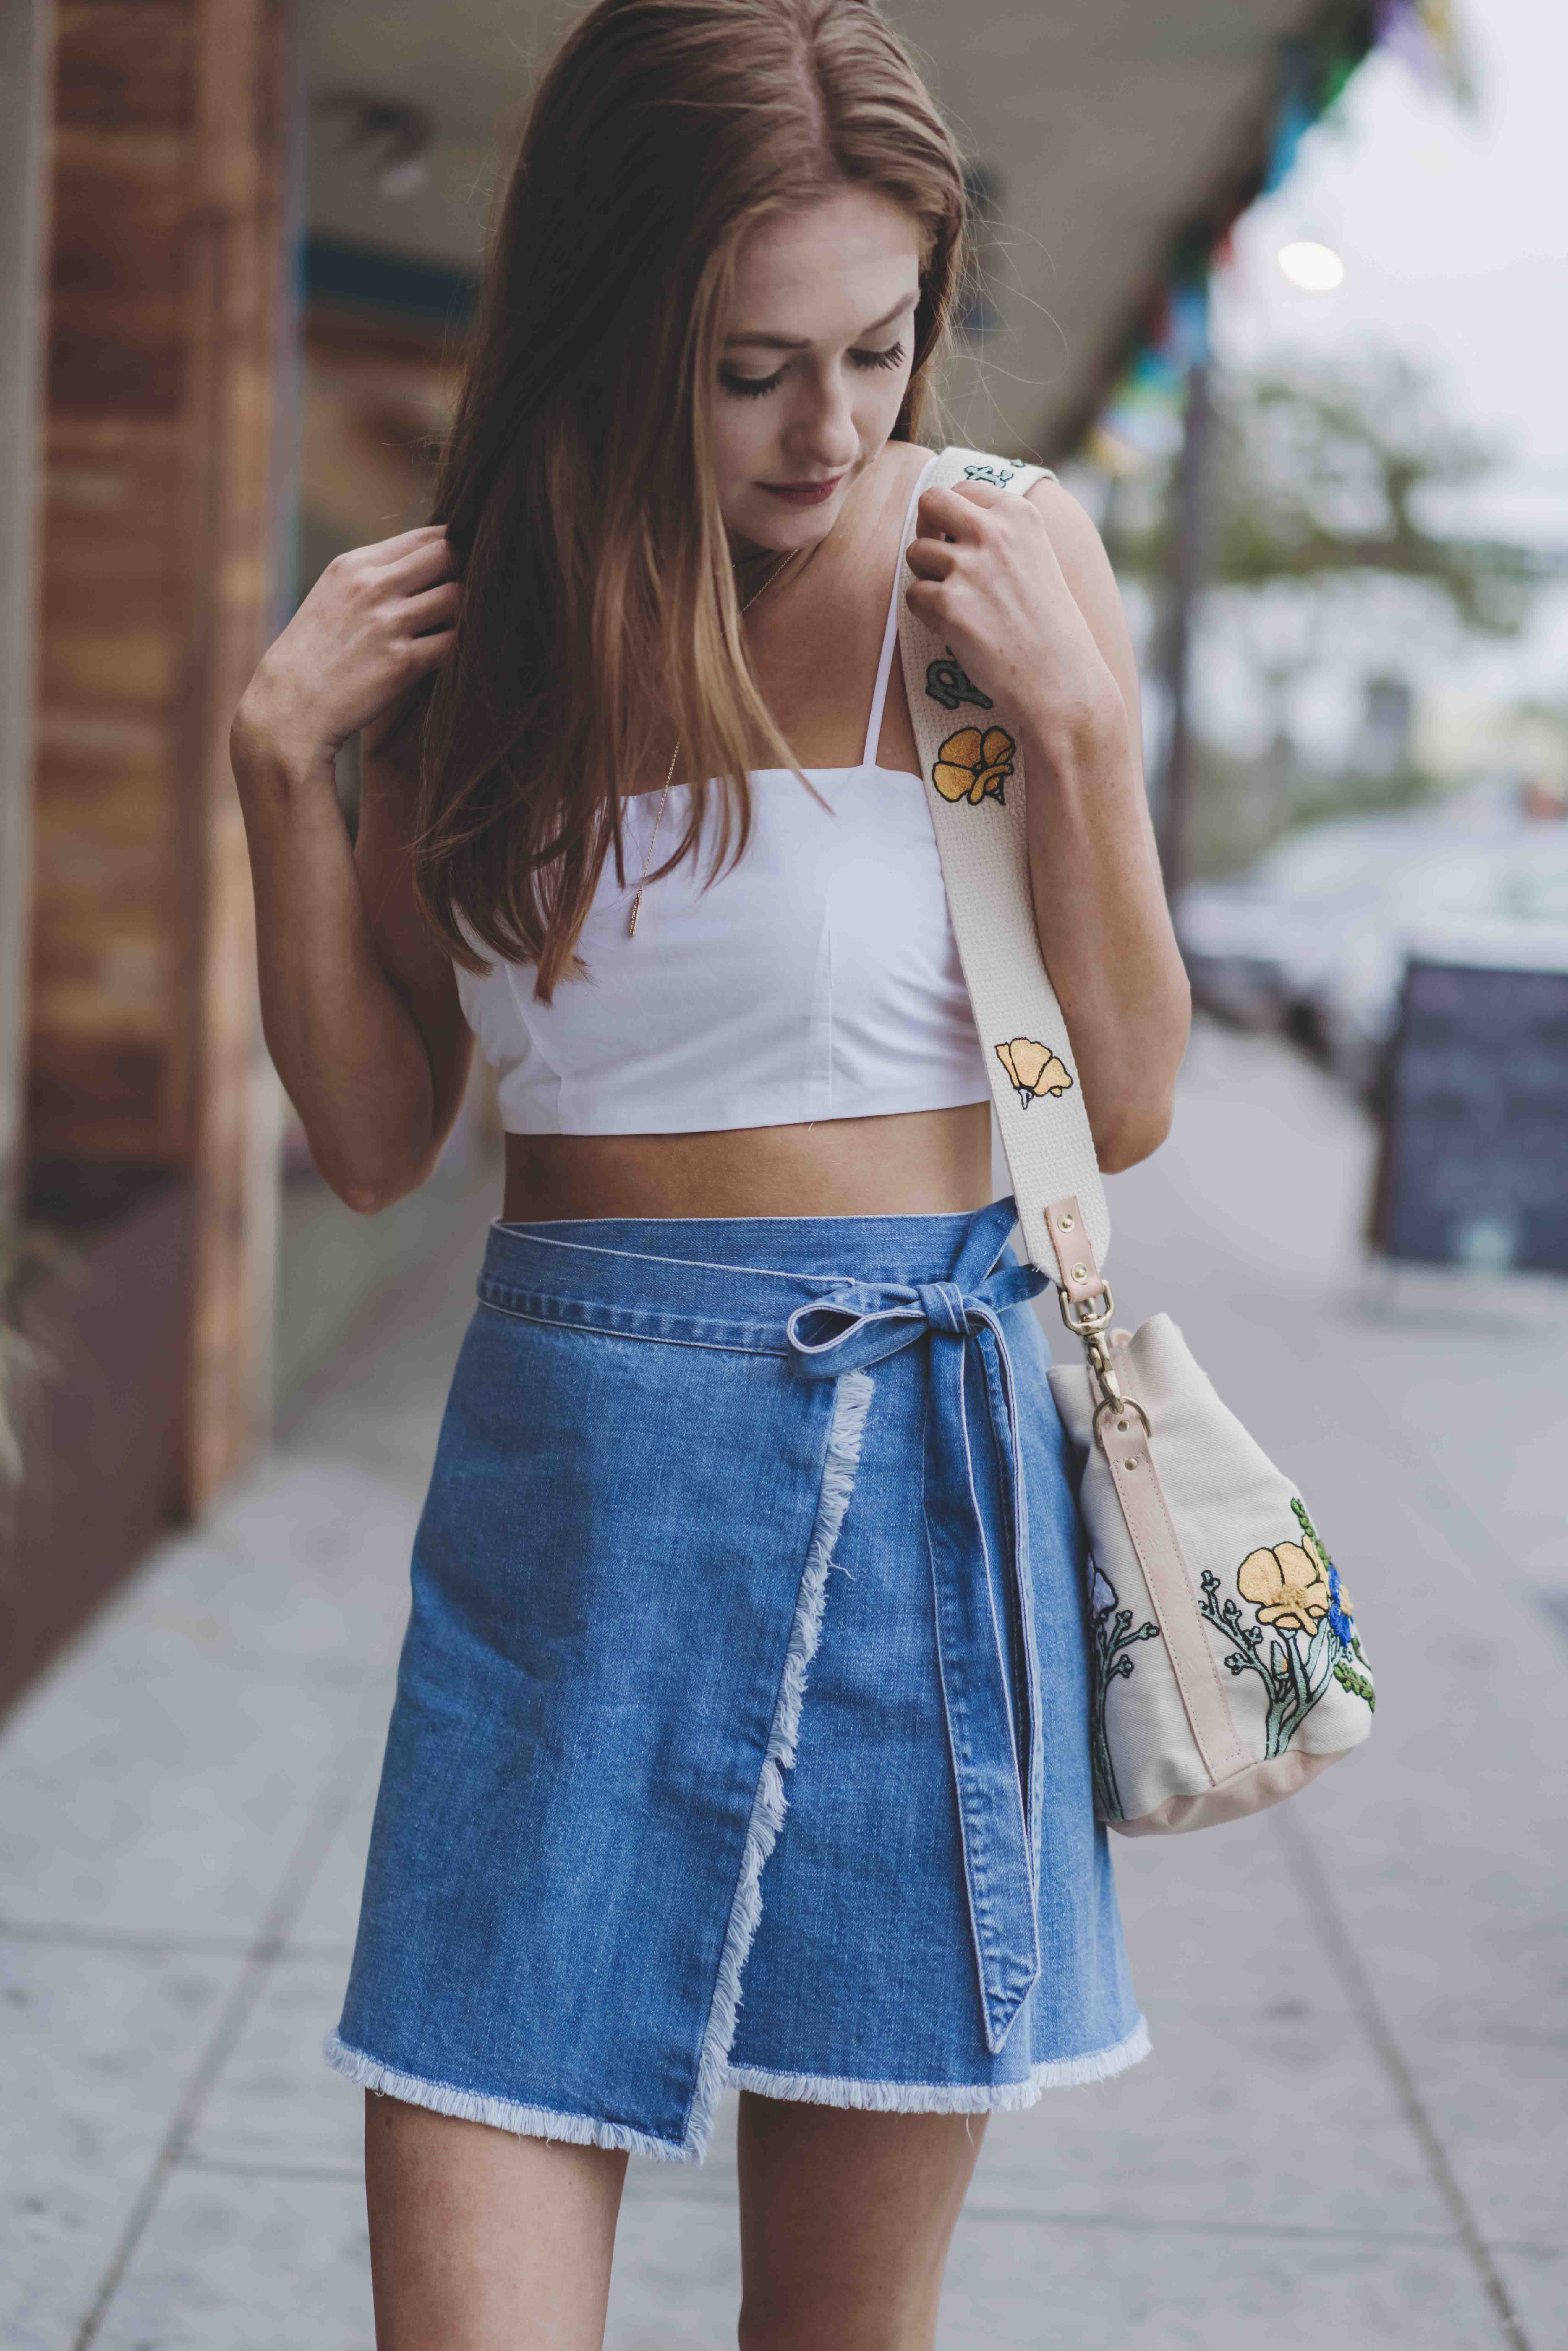 Five Wrap Denim Skirt to Transition your wardrobe to fall // But What Should I Wear